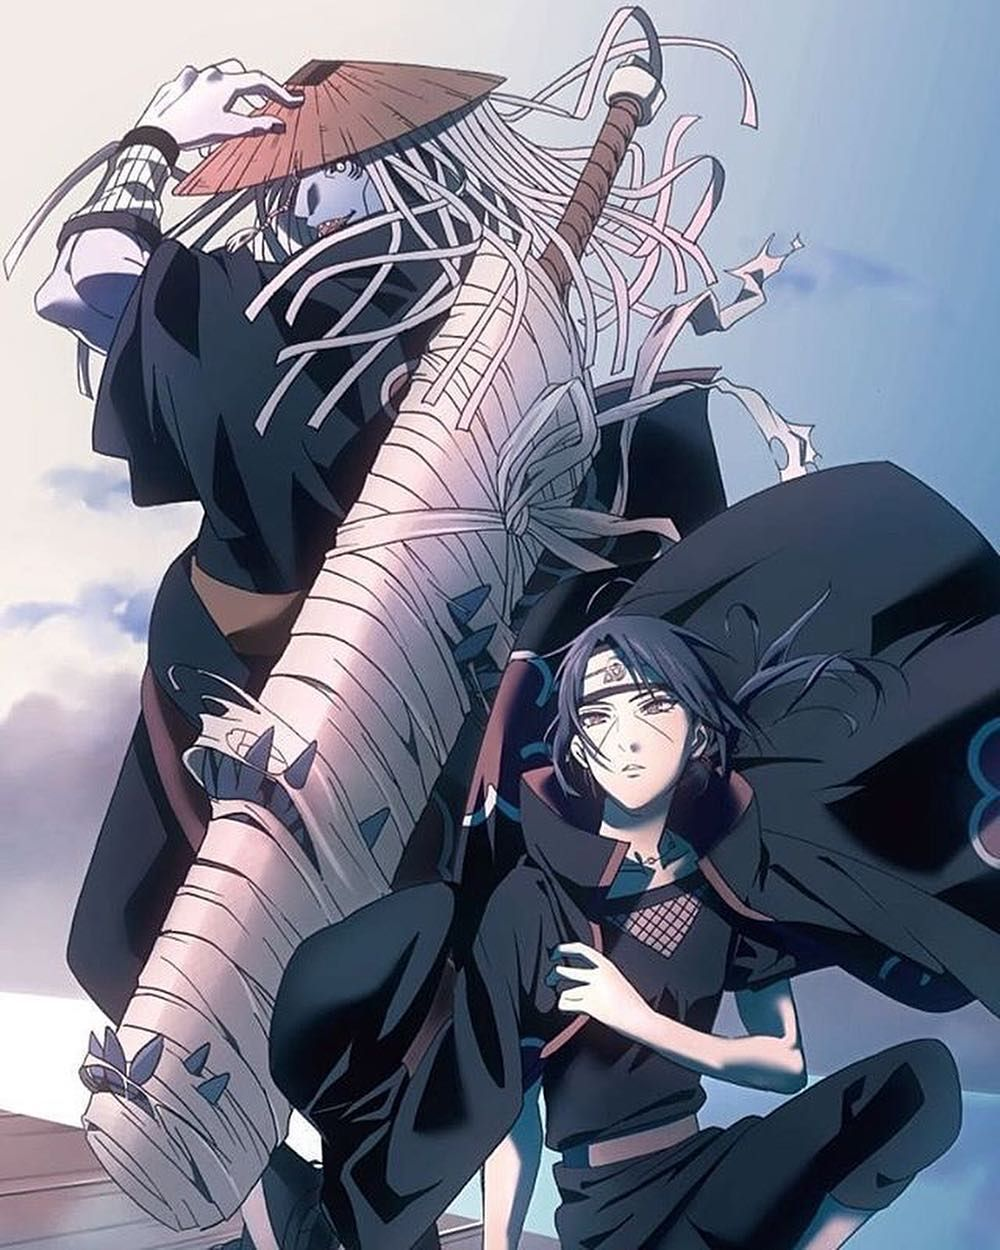 Itachi Or Kisame Follow Officials Itachi For More Dm Me For Sponsor Promotion Credit Goes To Naruto Personagens Naruto Shippuden Super Anime